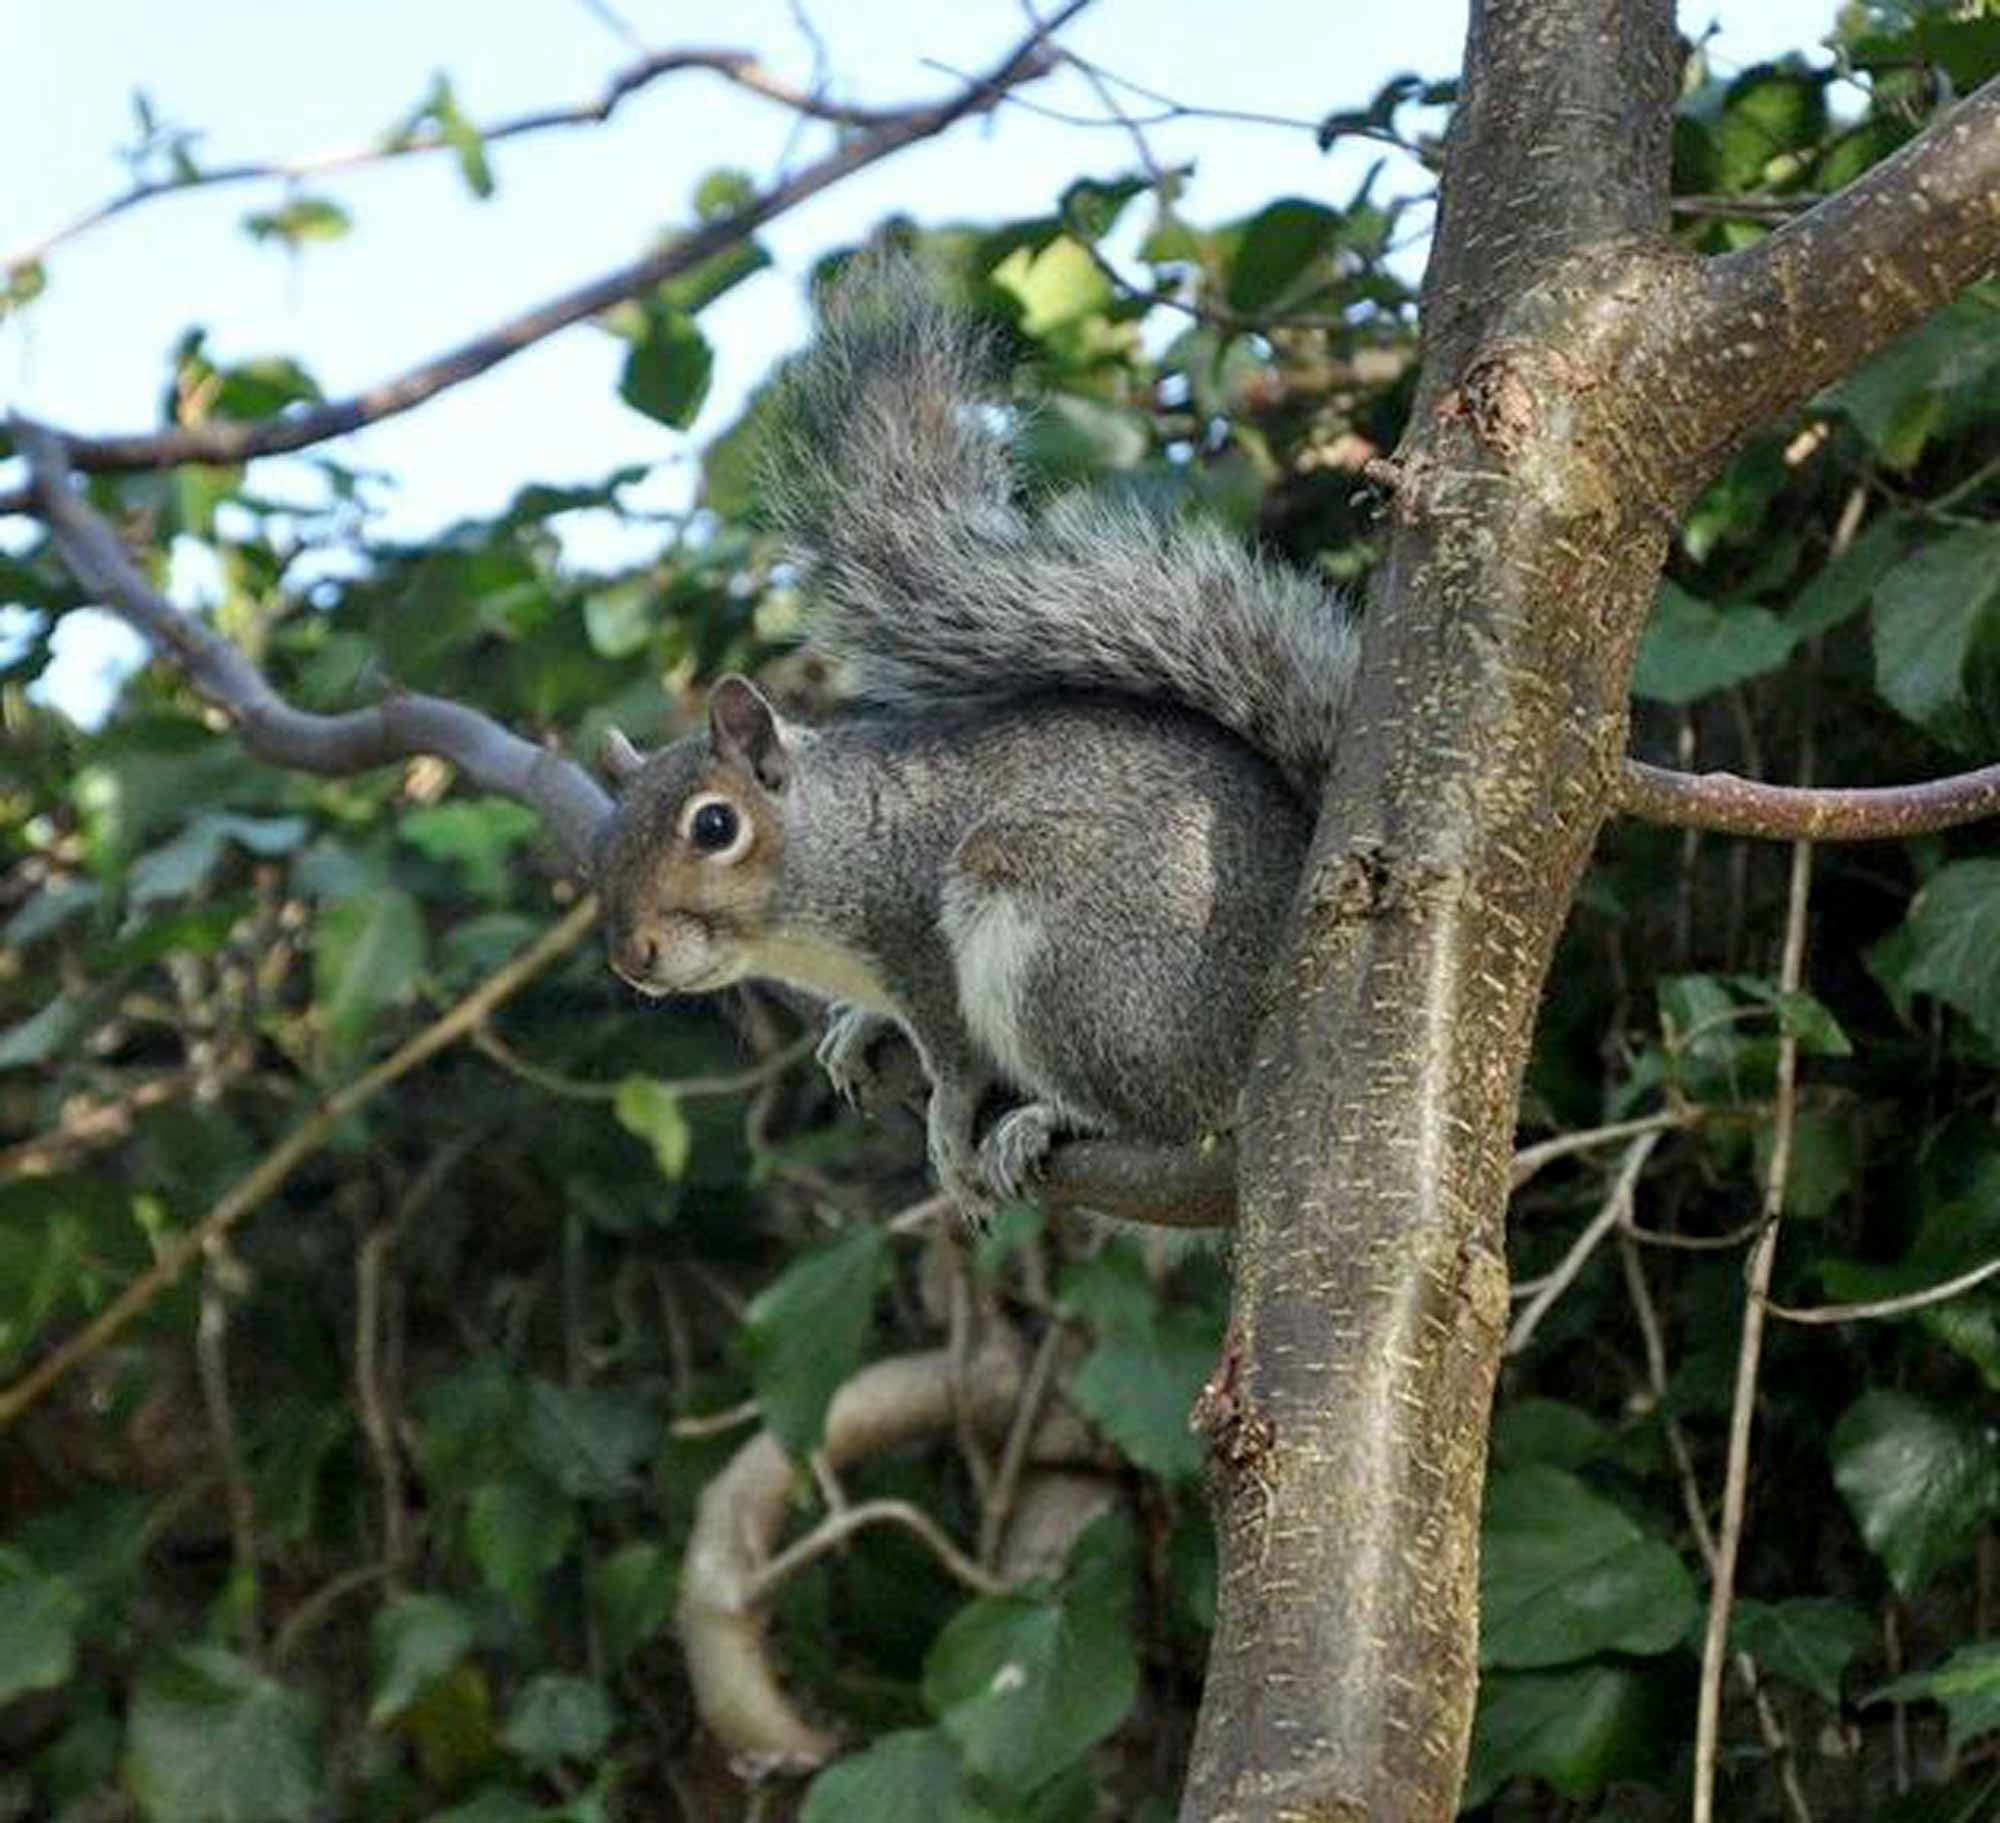 Squirrel in a tree.